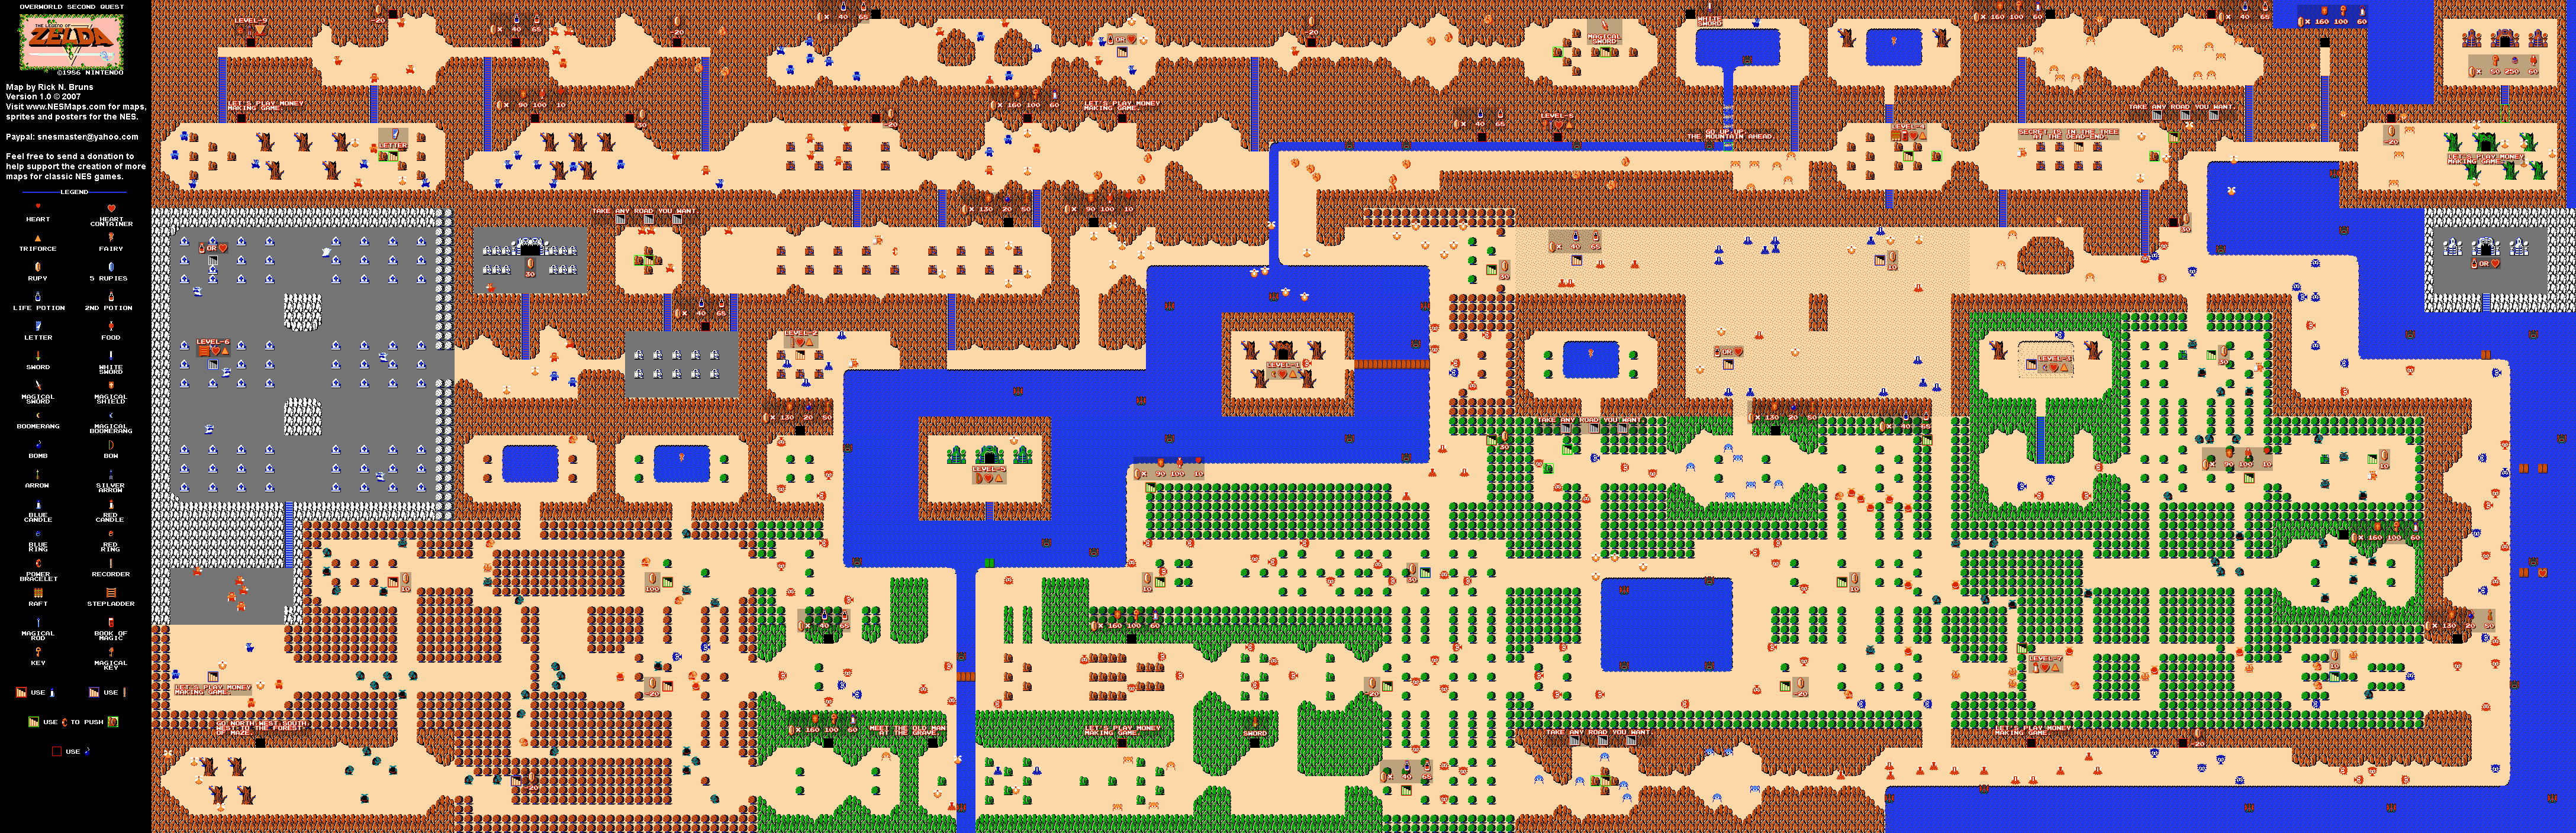 The Legend of Zelda Overworld Quest 2 NES Map